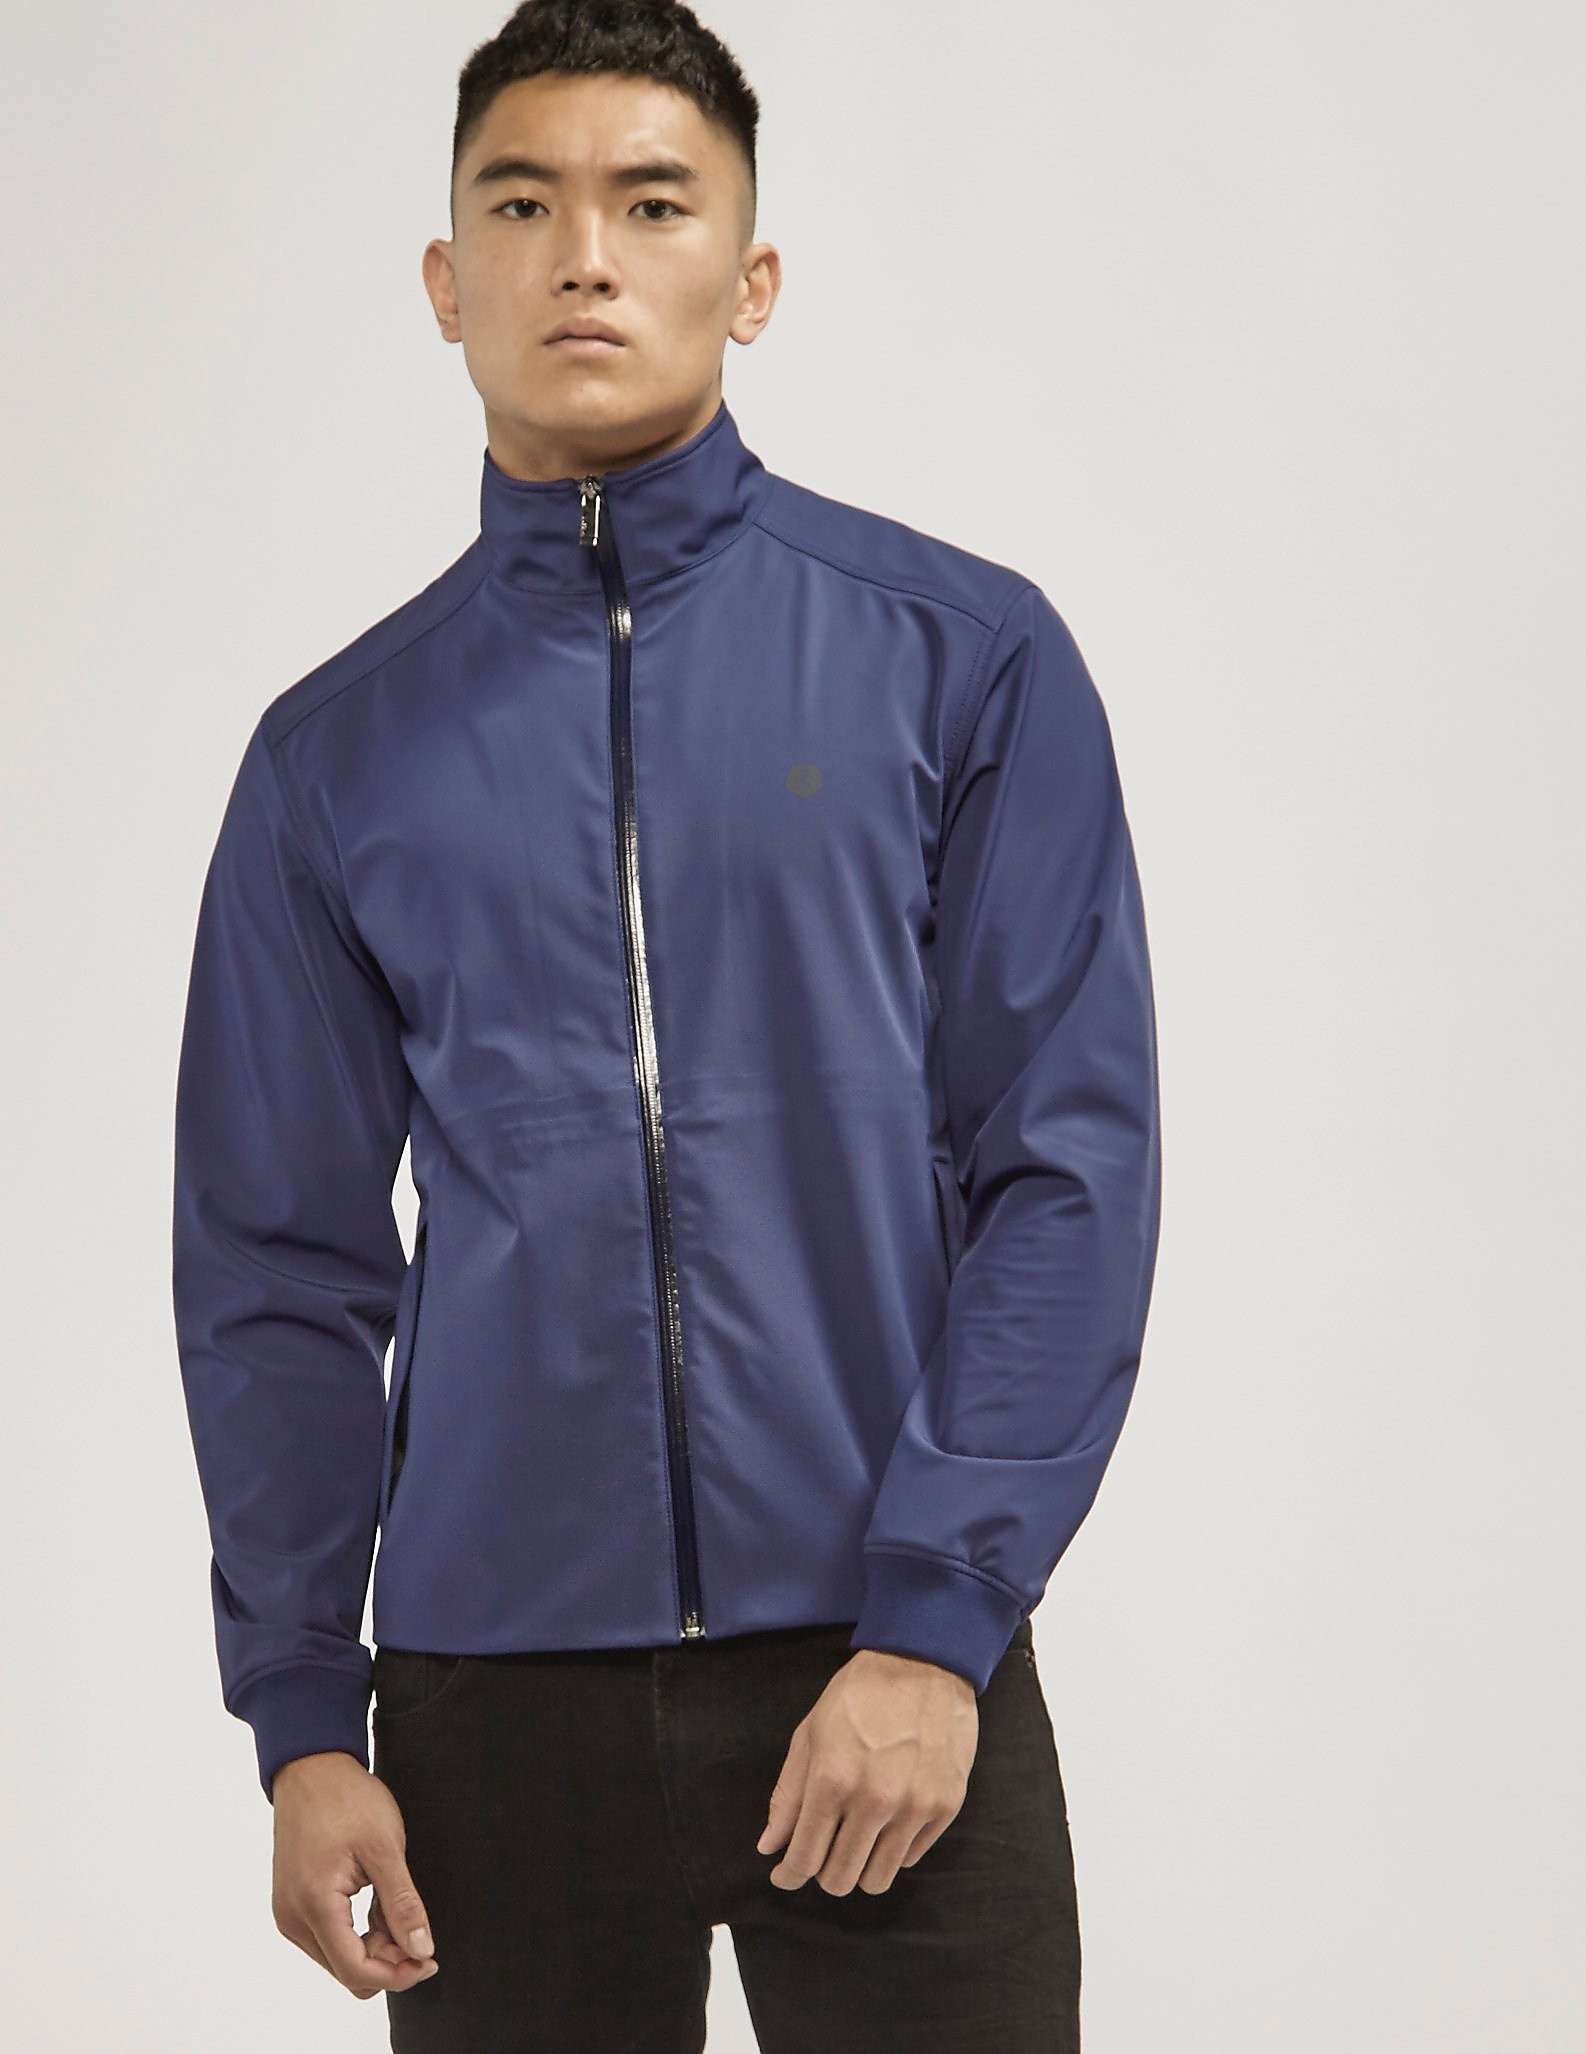 Z Zegna Softshell Zip Up Jacket